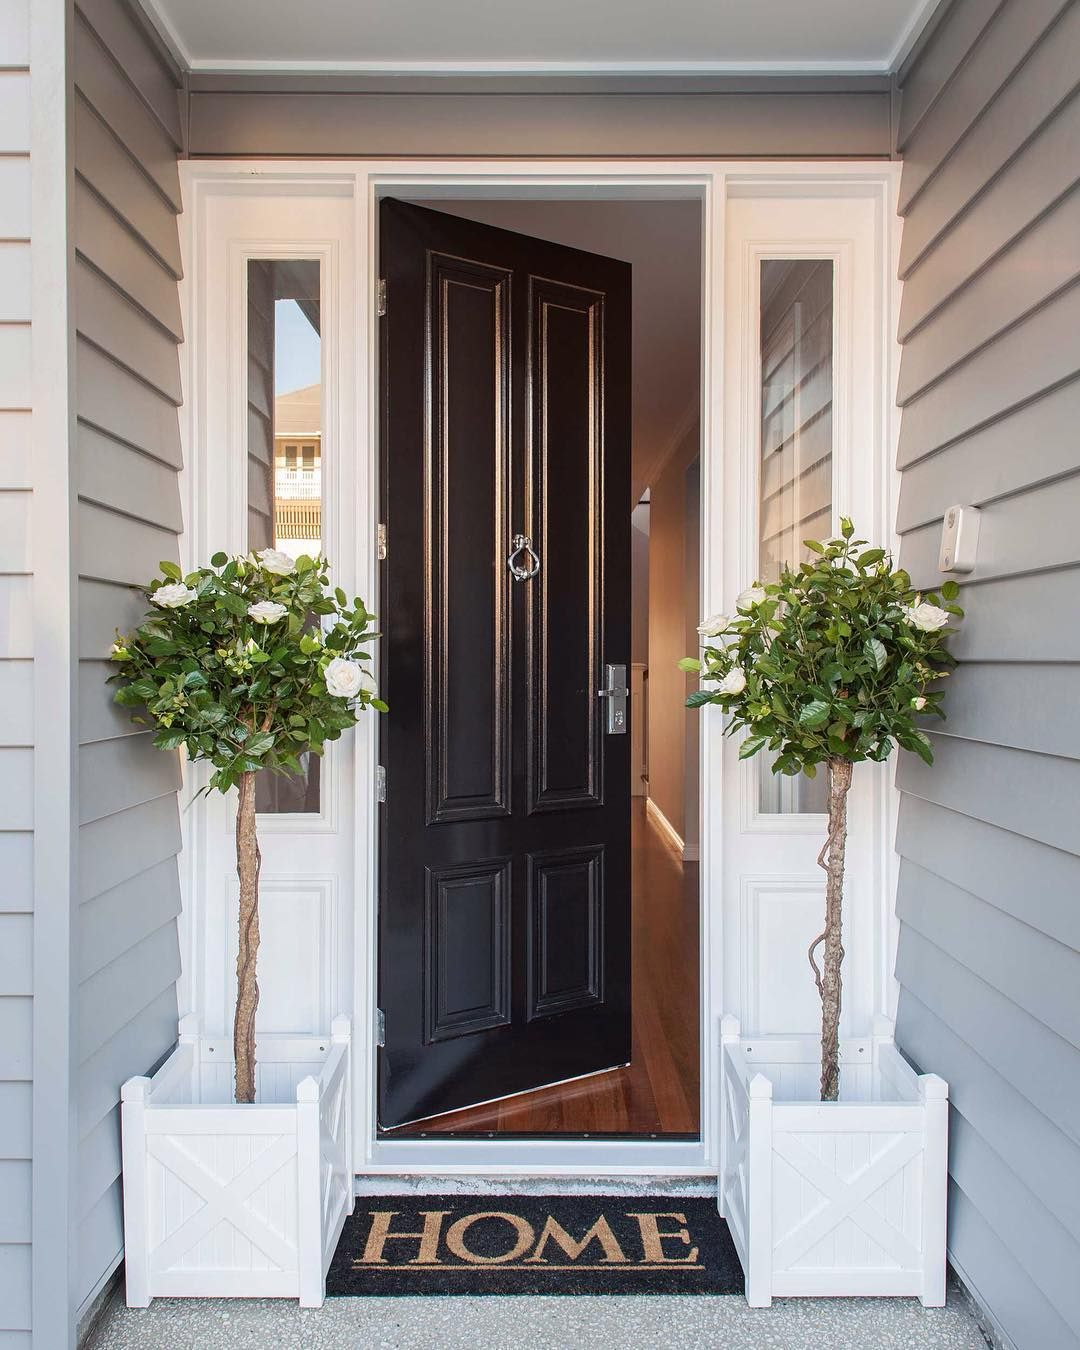 Instagram House Exterior Outdoor Entryway House Entrance